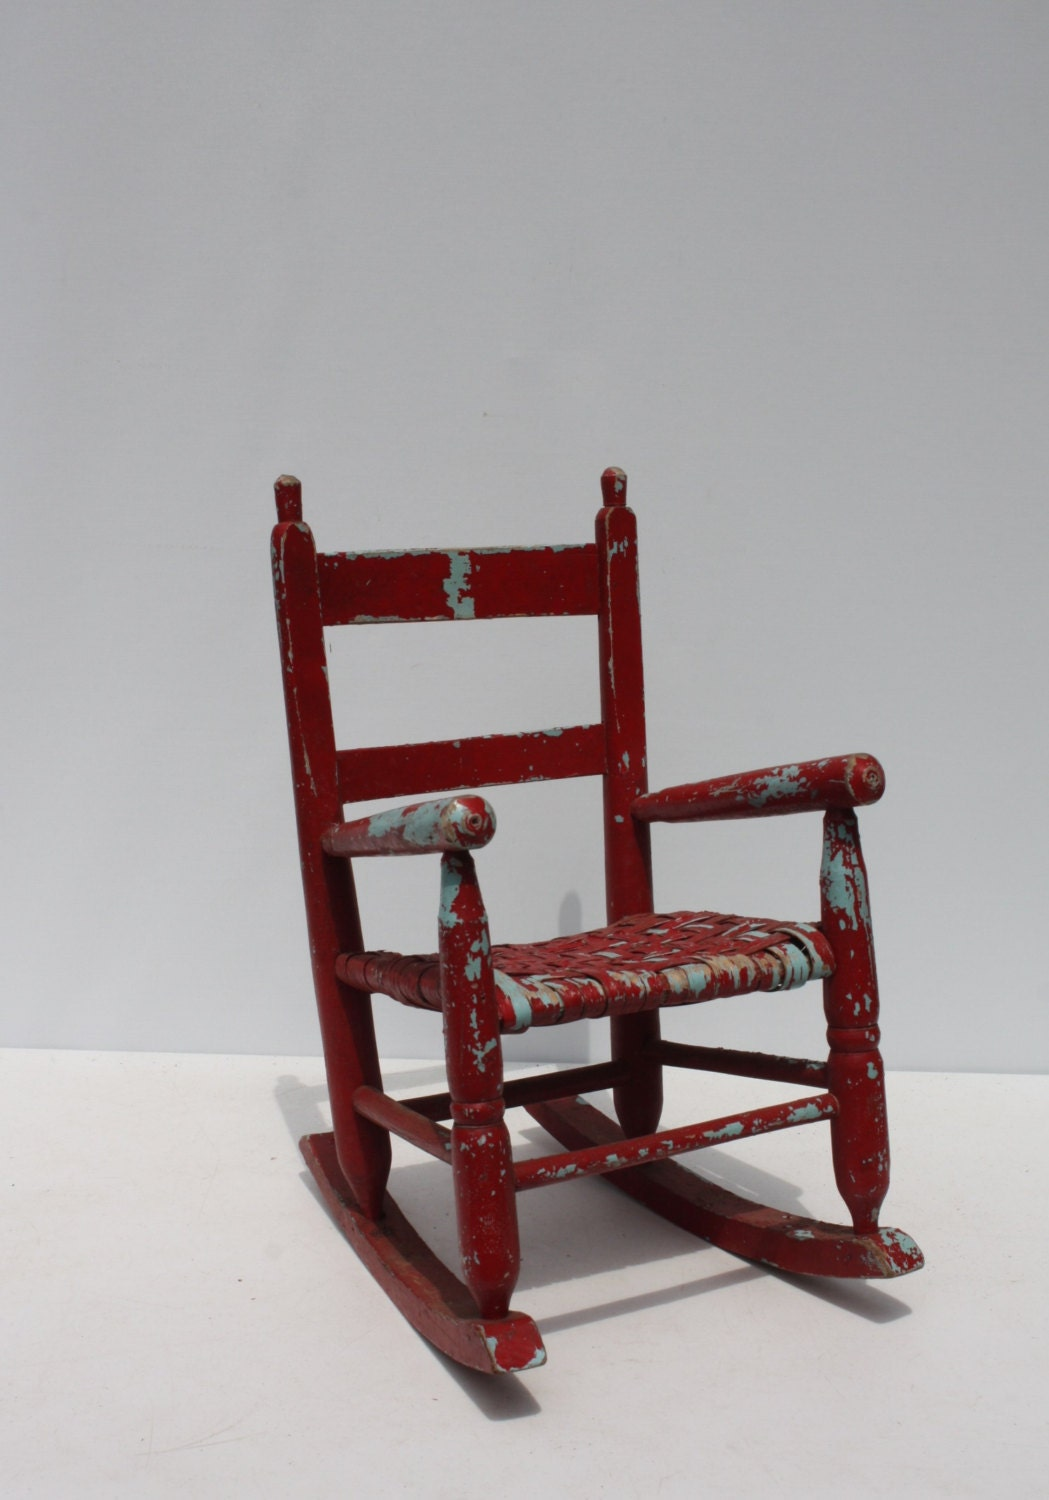 vintage child 39 s rocking chair wood wooden woven seat red. Black Bedroom Furniture Sets. Home Design Ideas